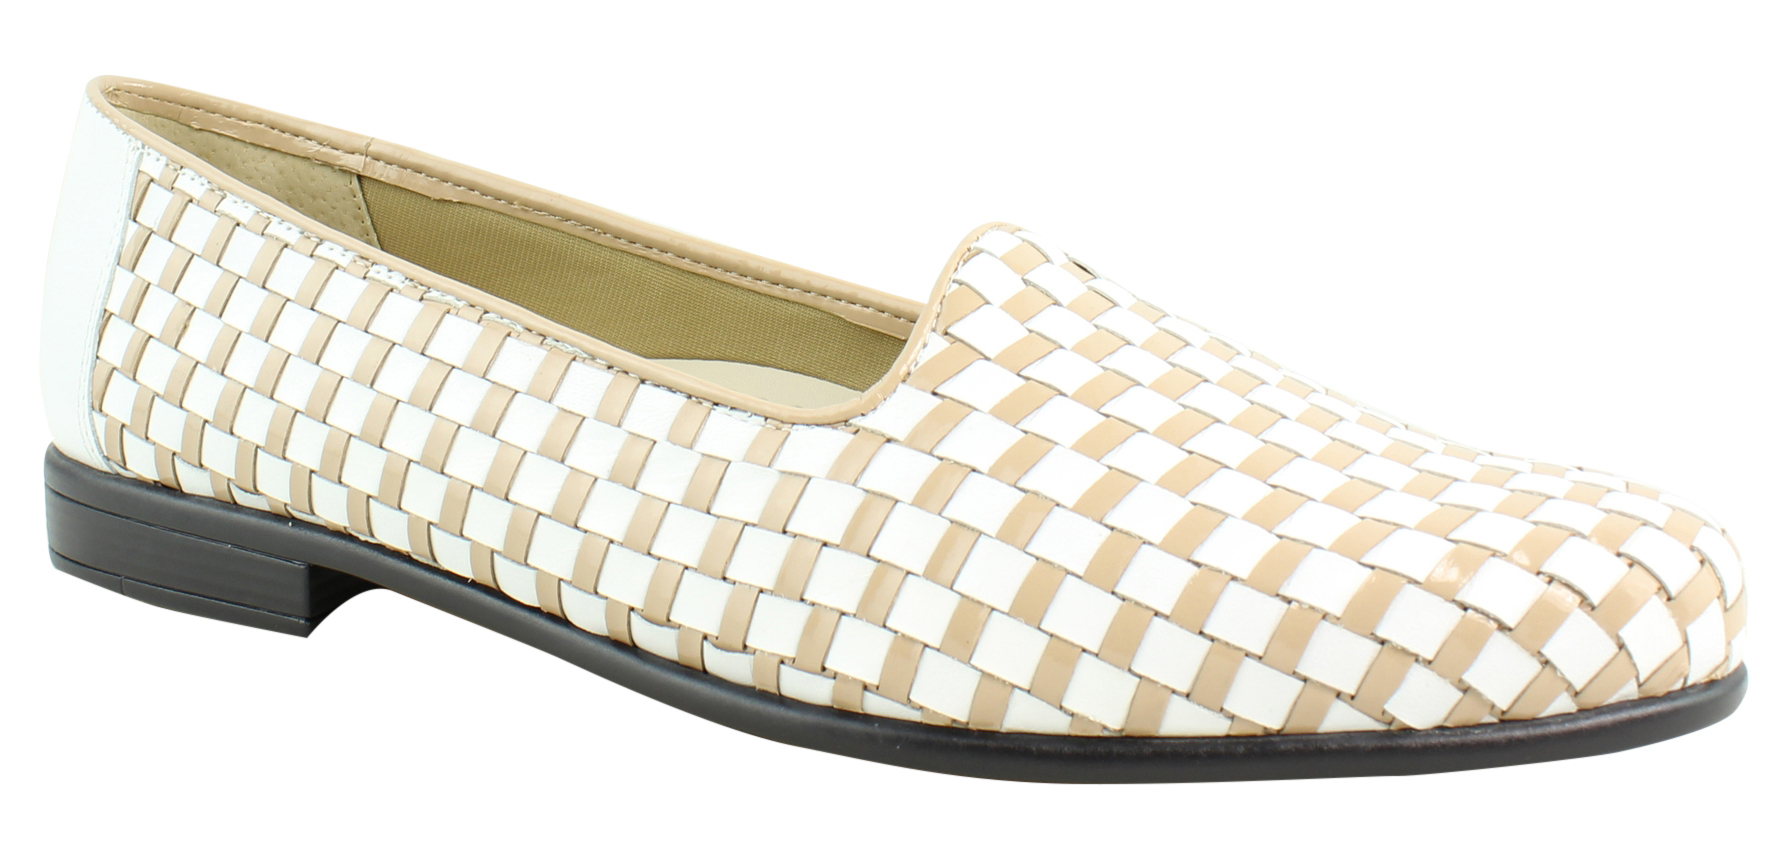 New Trotters Womens T5158-113 White Nude Loafers Size 9 (AA,N) by Trotters